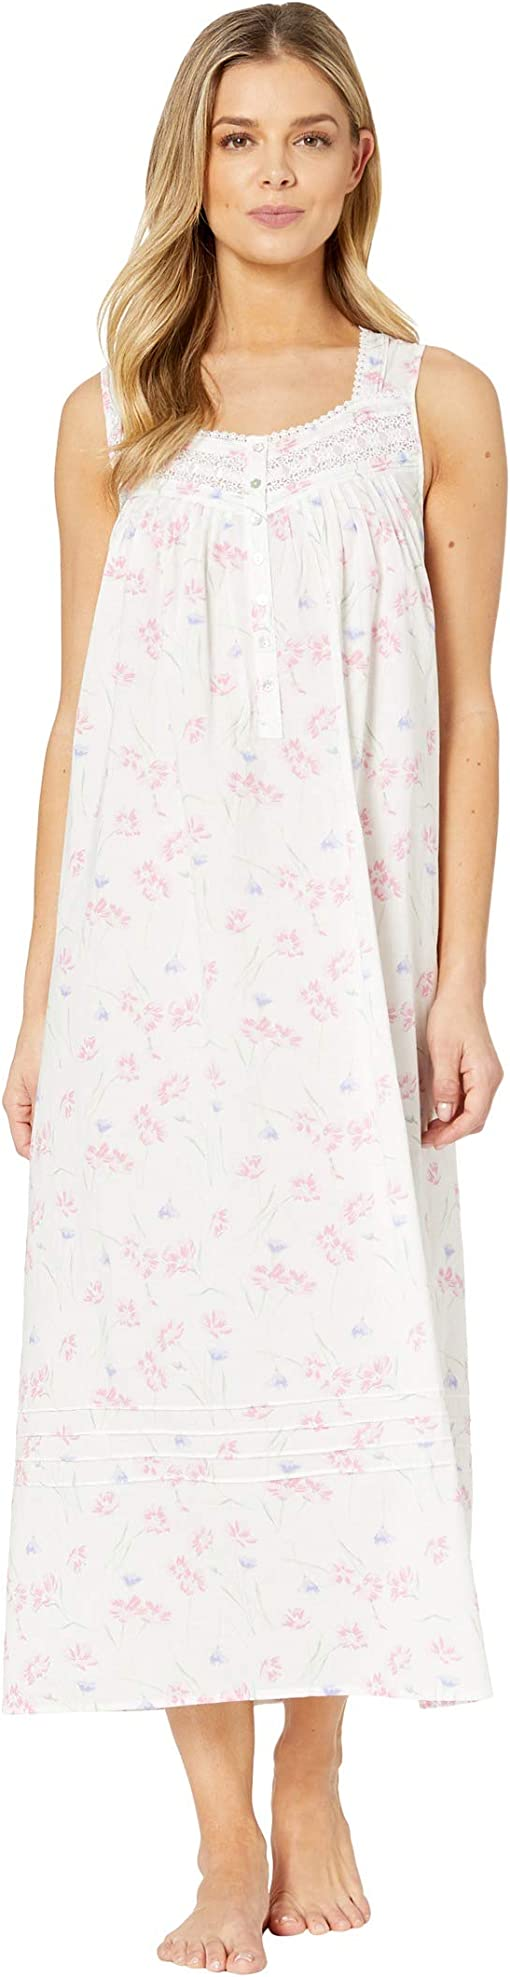 White Ground/Tossed Floral